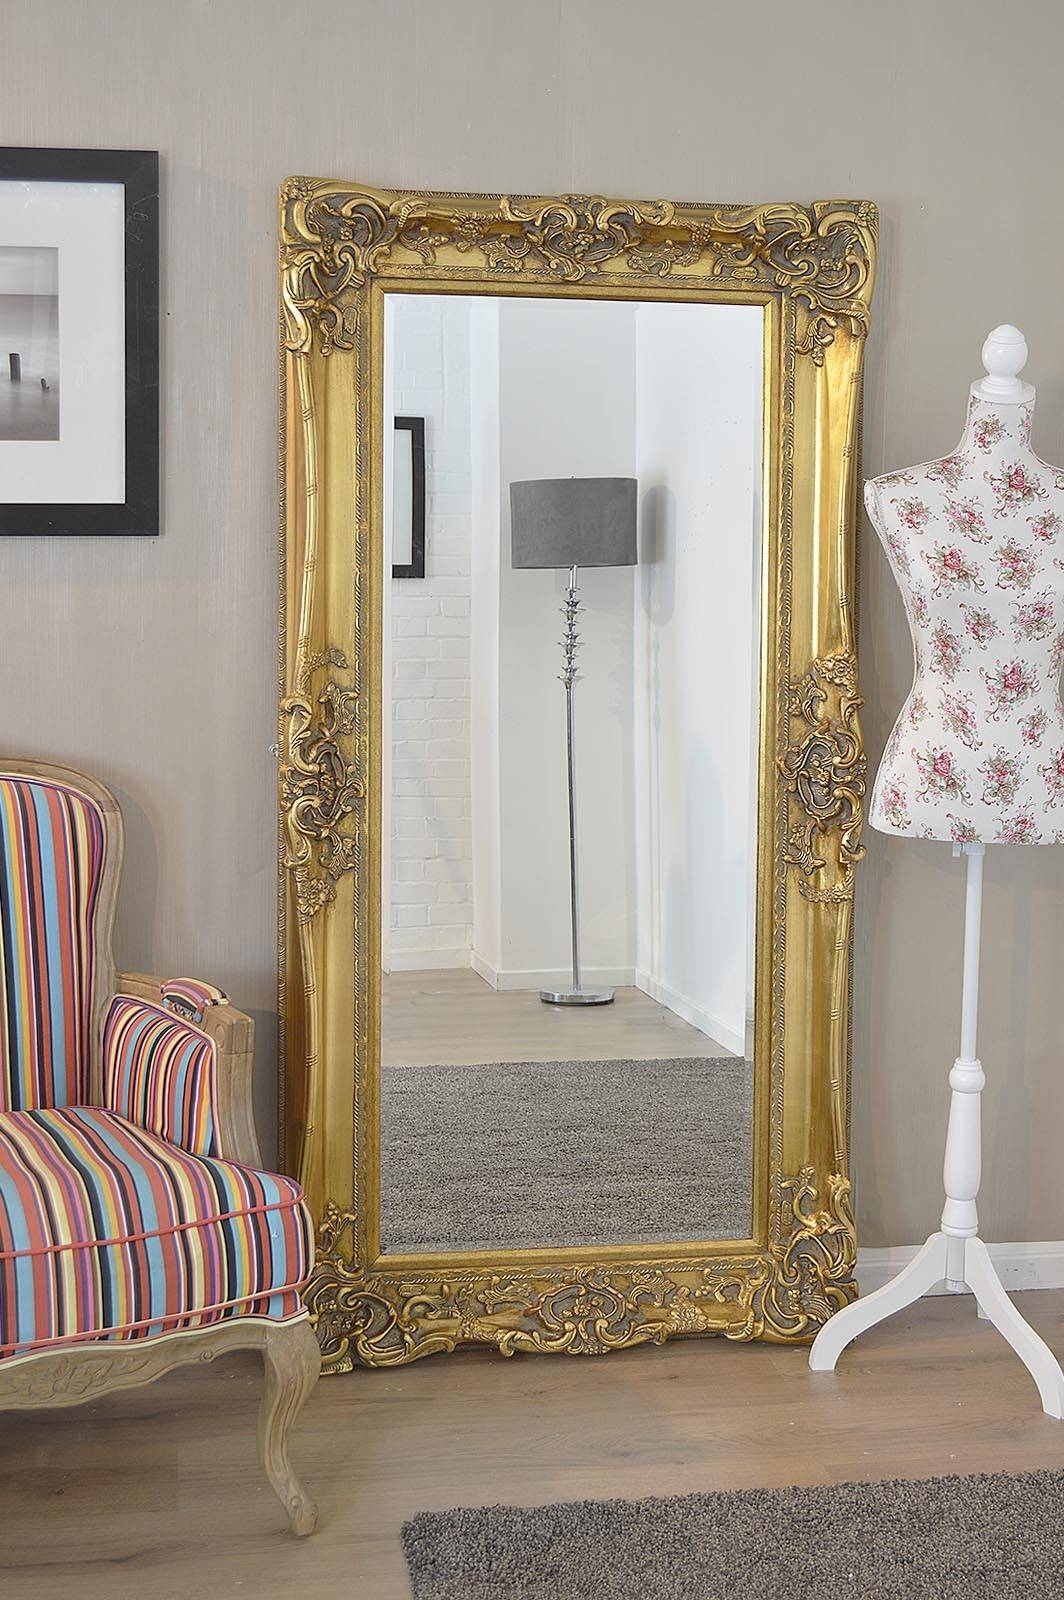 Classic Impression On Antique Wall Mirrors | Vwho intended for Antique Style Wall Mirrors (Image 12 of 25)